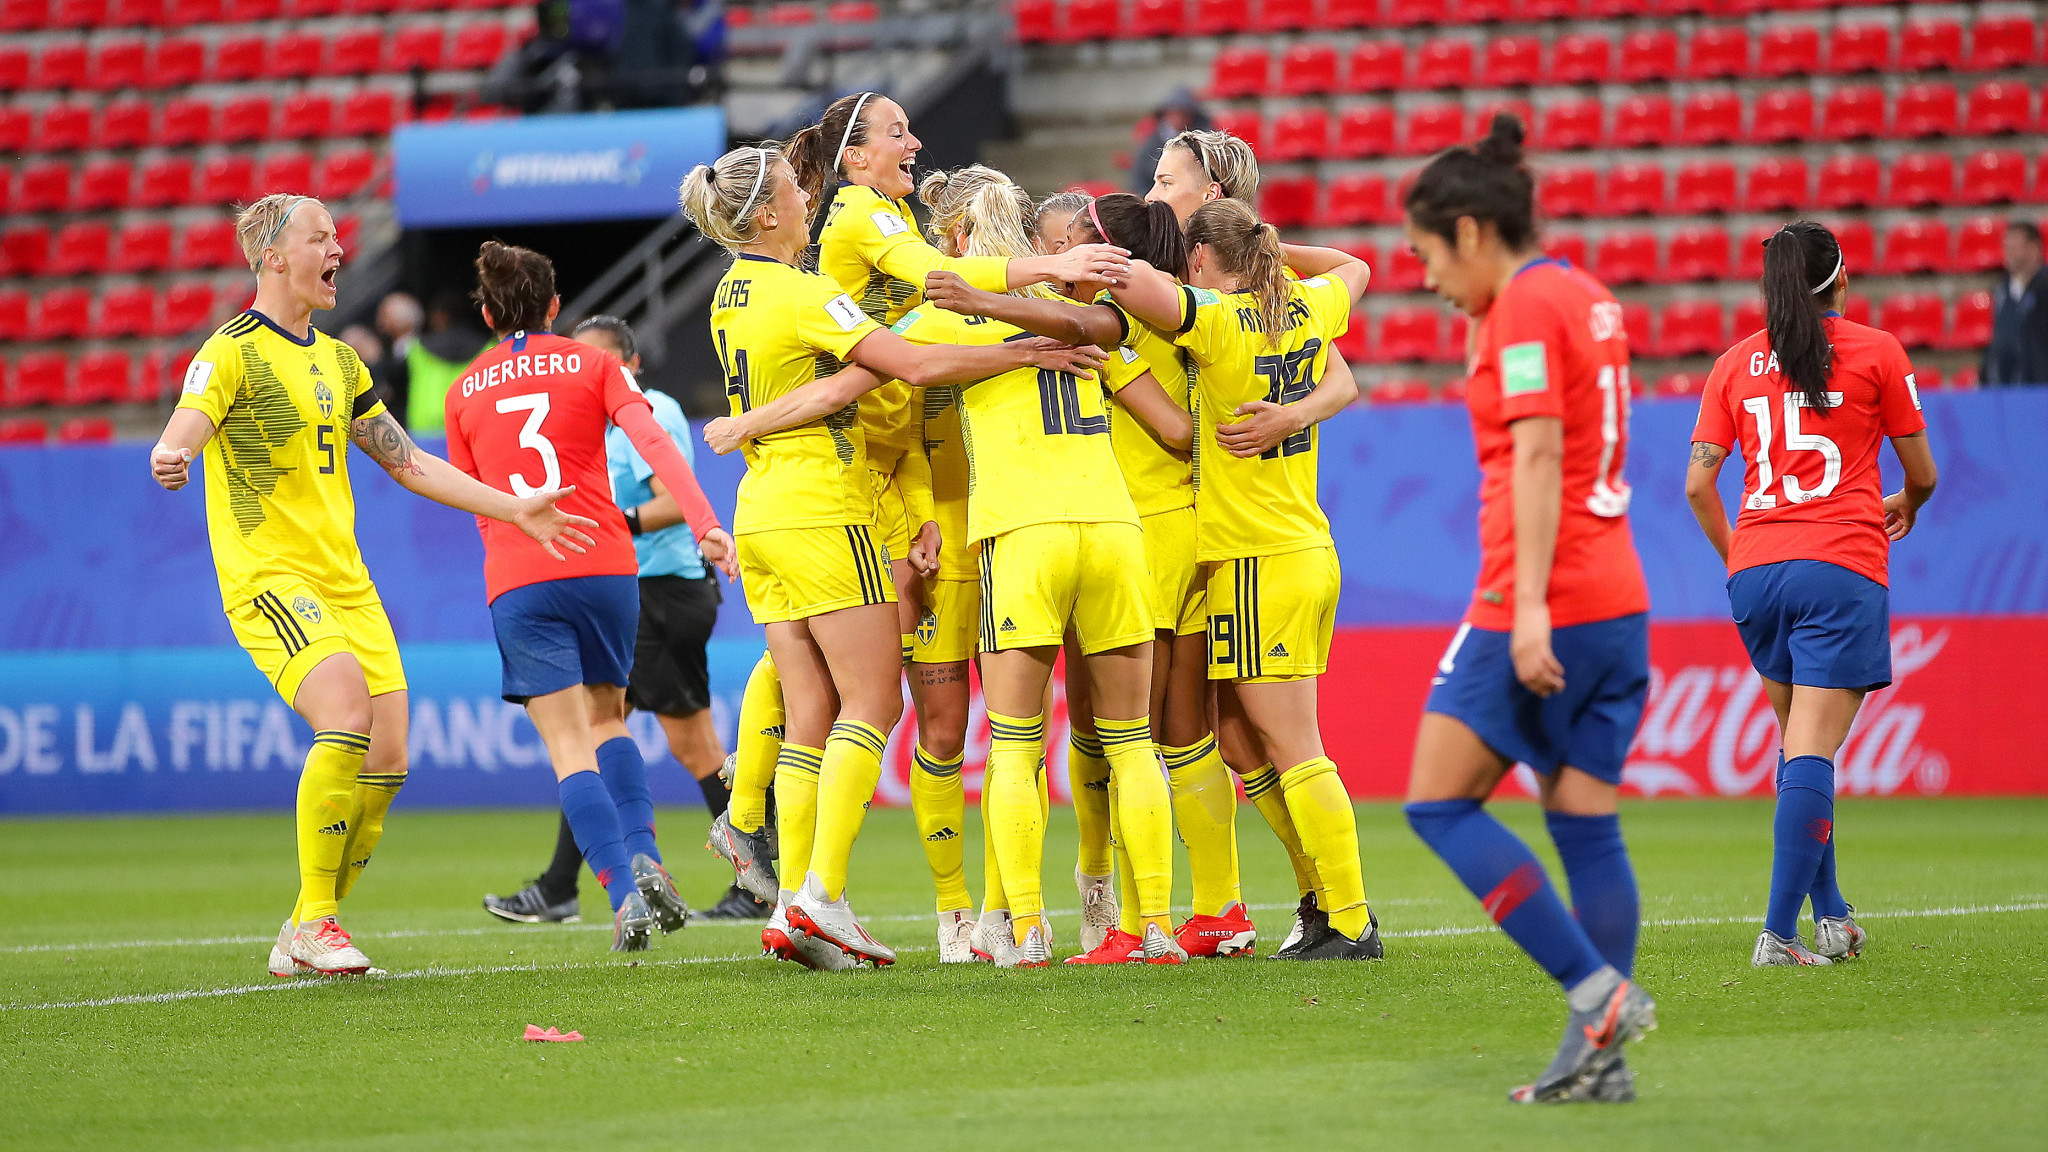 Madelen Janogy then scored to secure a 2-0 victory for Sweden ©Getty Images